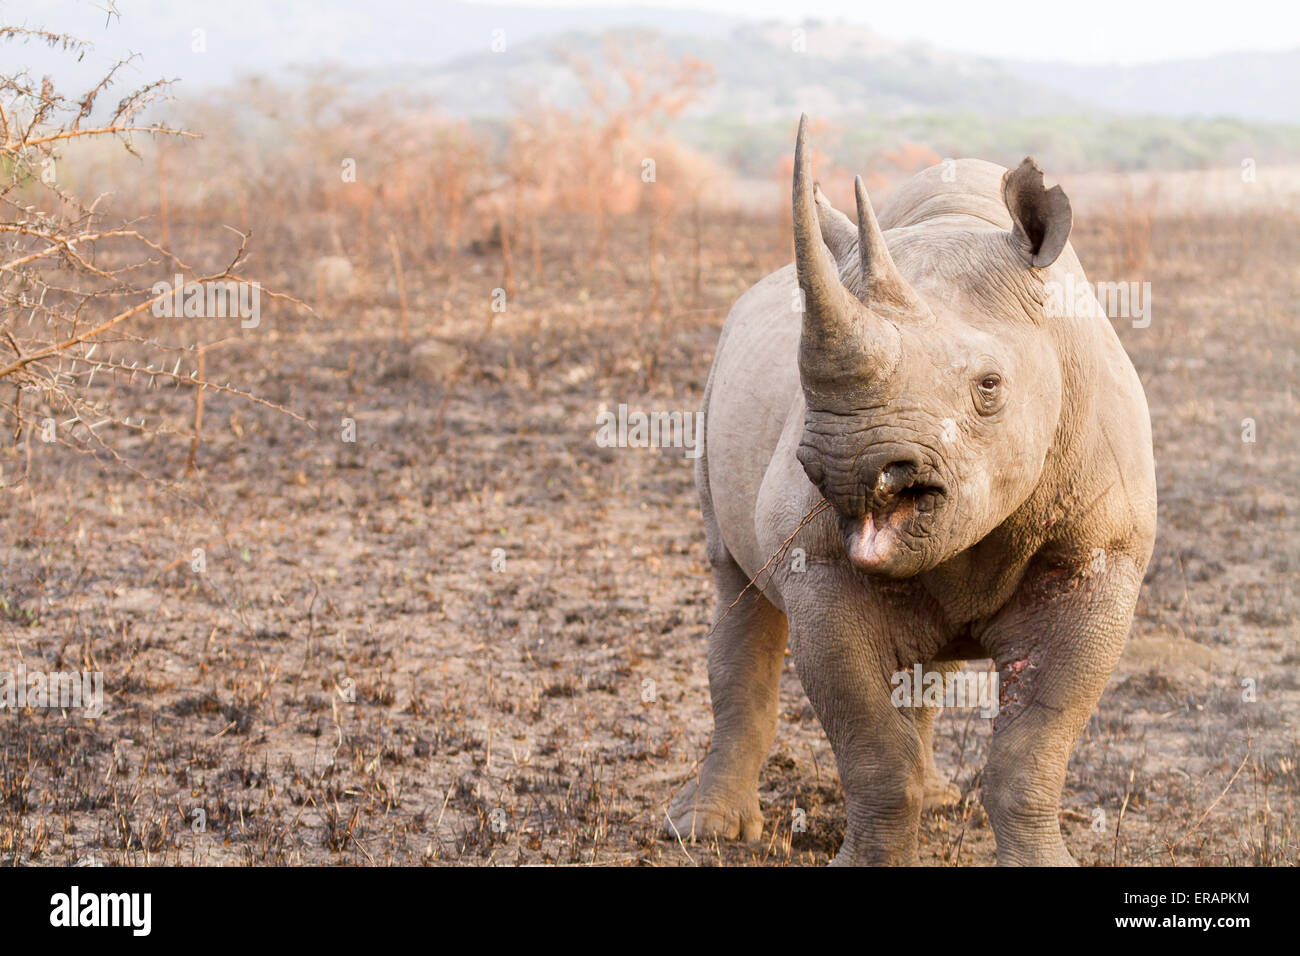 Male black rhino (Diceros bicornis) charging, Phinda Private Game Reserve, South Africa - Stock Image